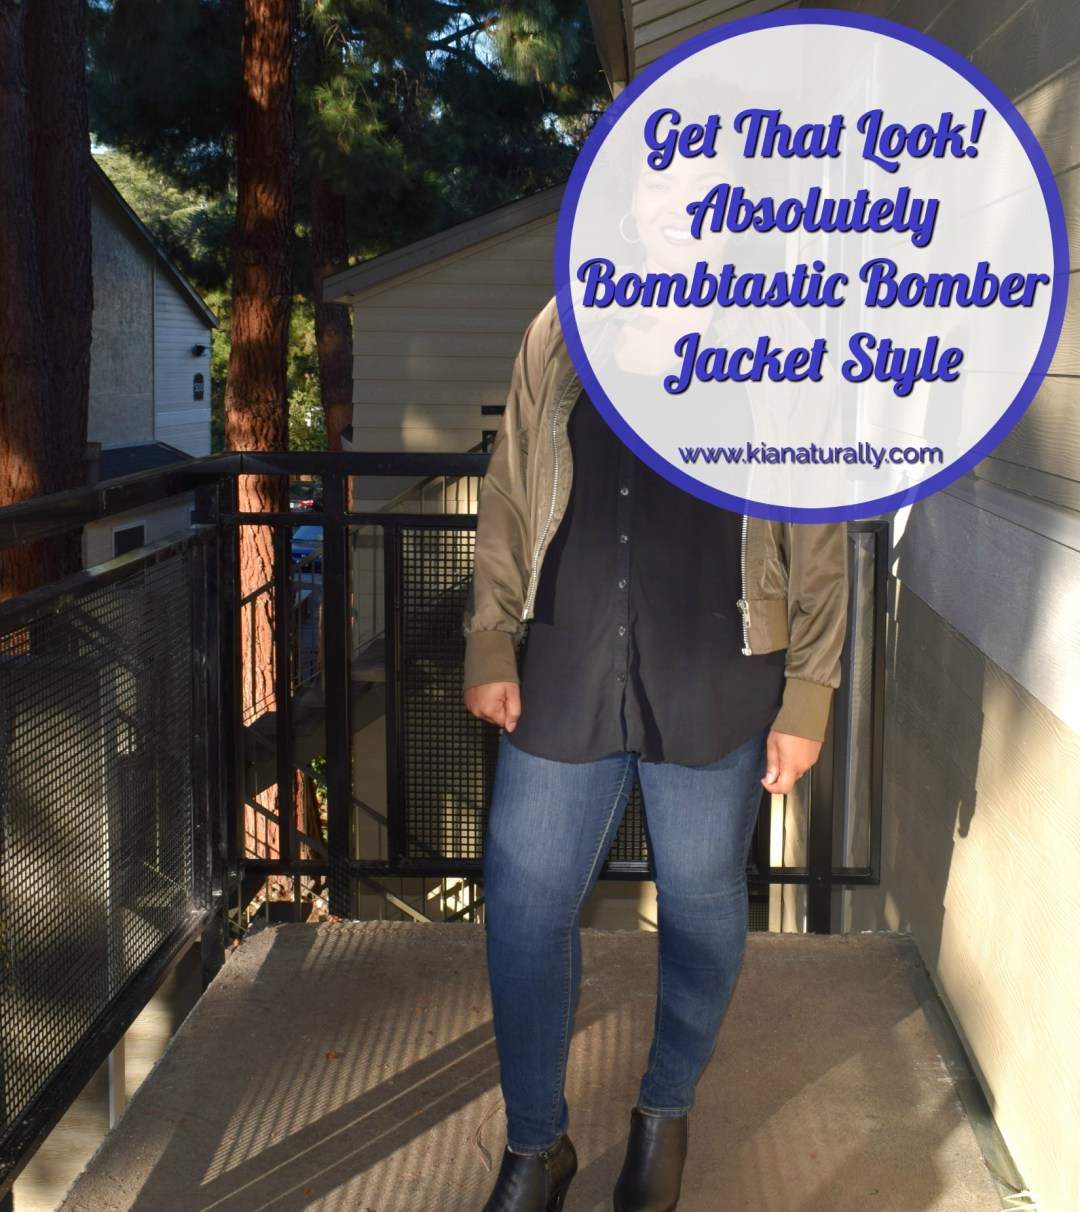 Get That Look! Absolutely Bombtastic Bomber Jacket Style - www.kianaturally.com